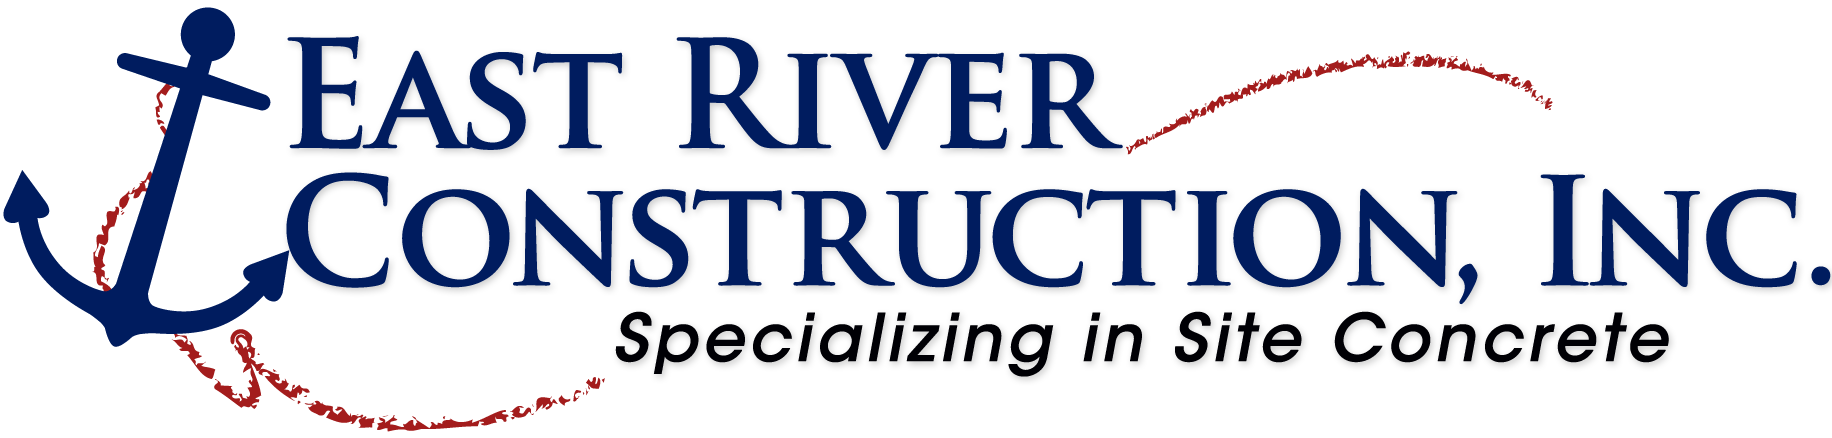 East River Construction Inc.